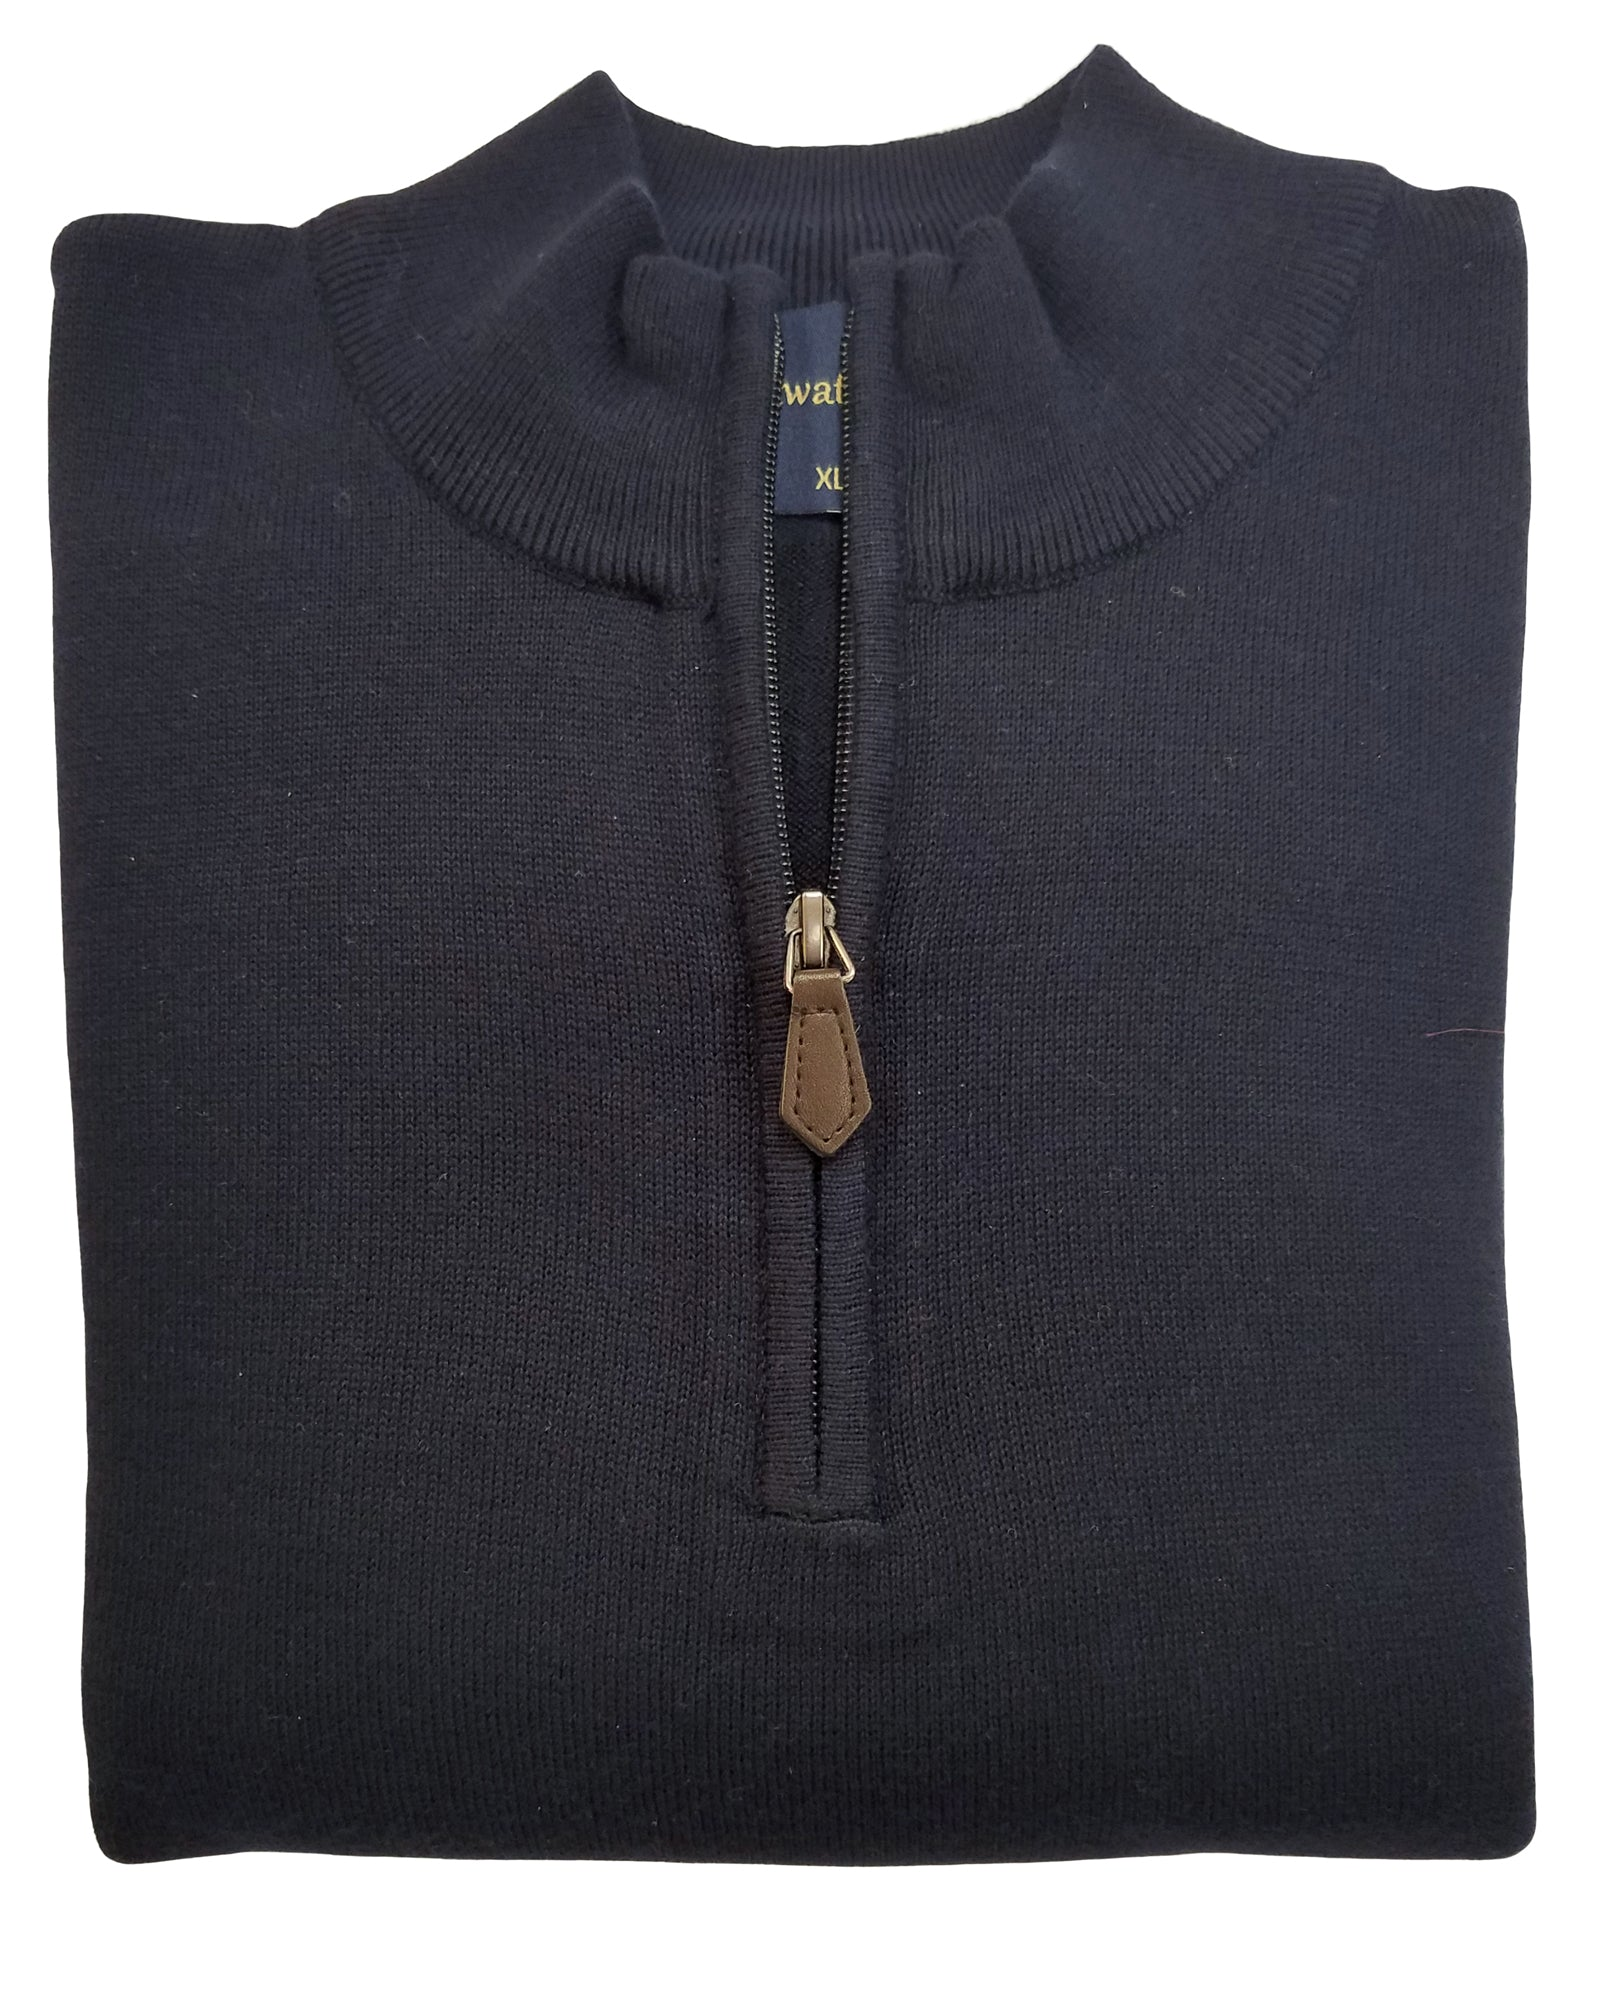 1/4 Zip Mock Sweater in Navy Cotton Blend - Rainwater's Men's Clothing and Tuxedo Rental